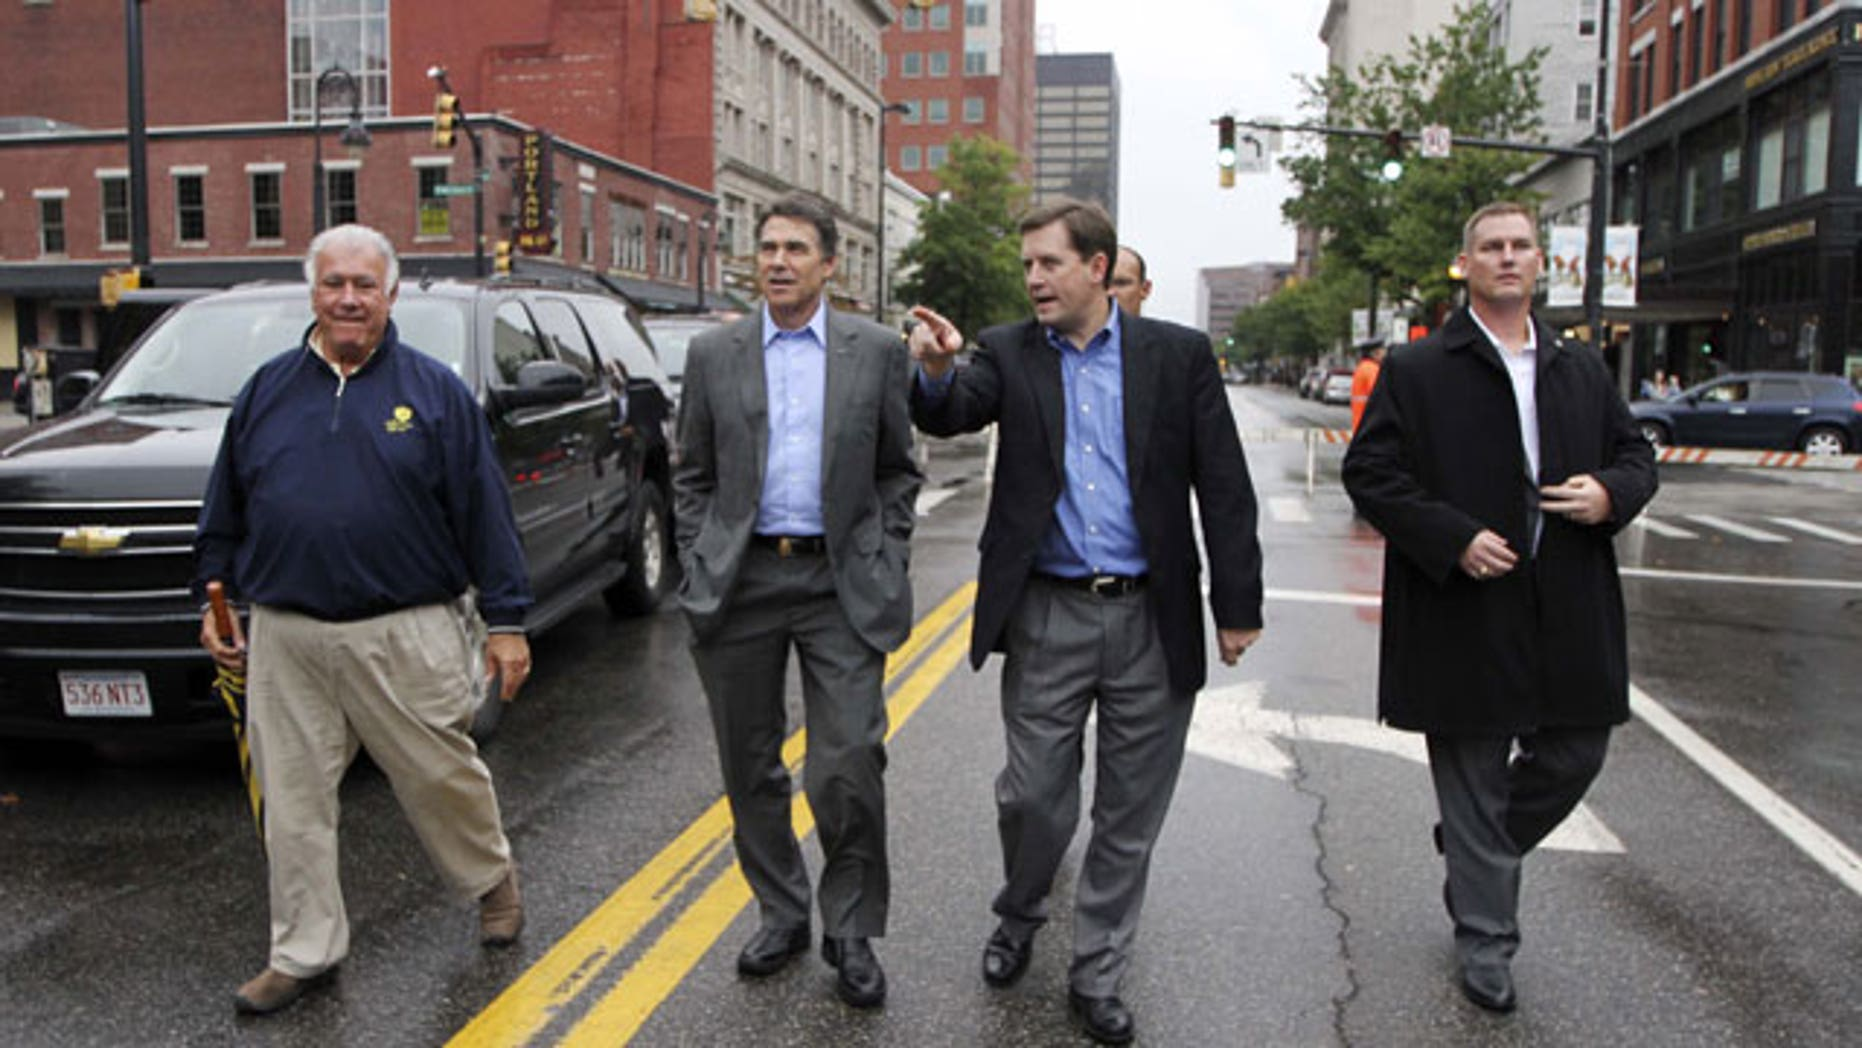 October 5: Republican presidential candidate, Texas Gov. Rick Perry, second from left, arrives at the Chili Festival with Mayor Ted Gatsas, far left, in Manchester, N.H.